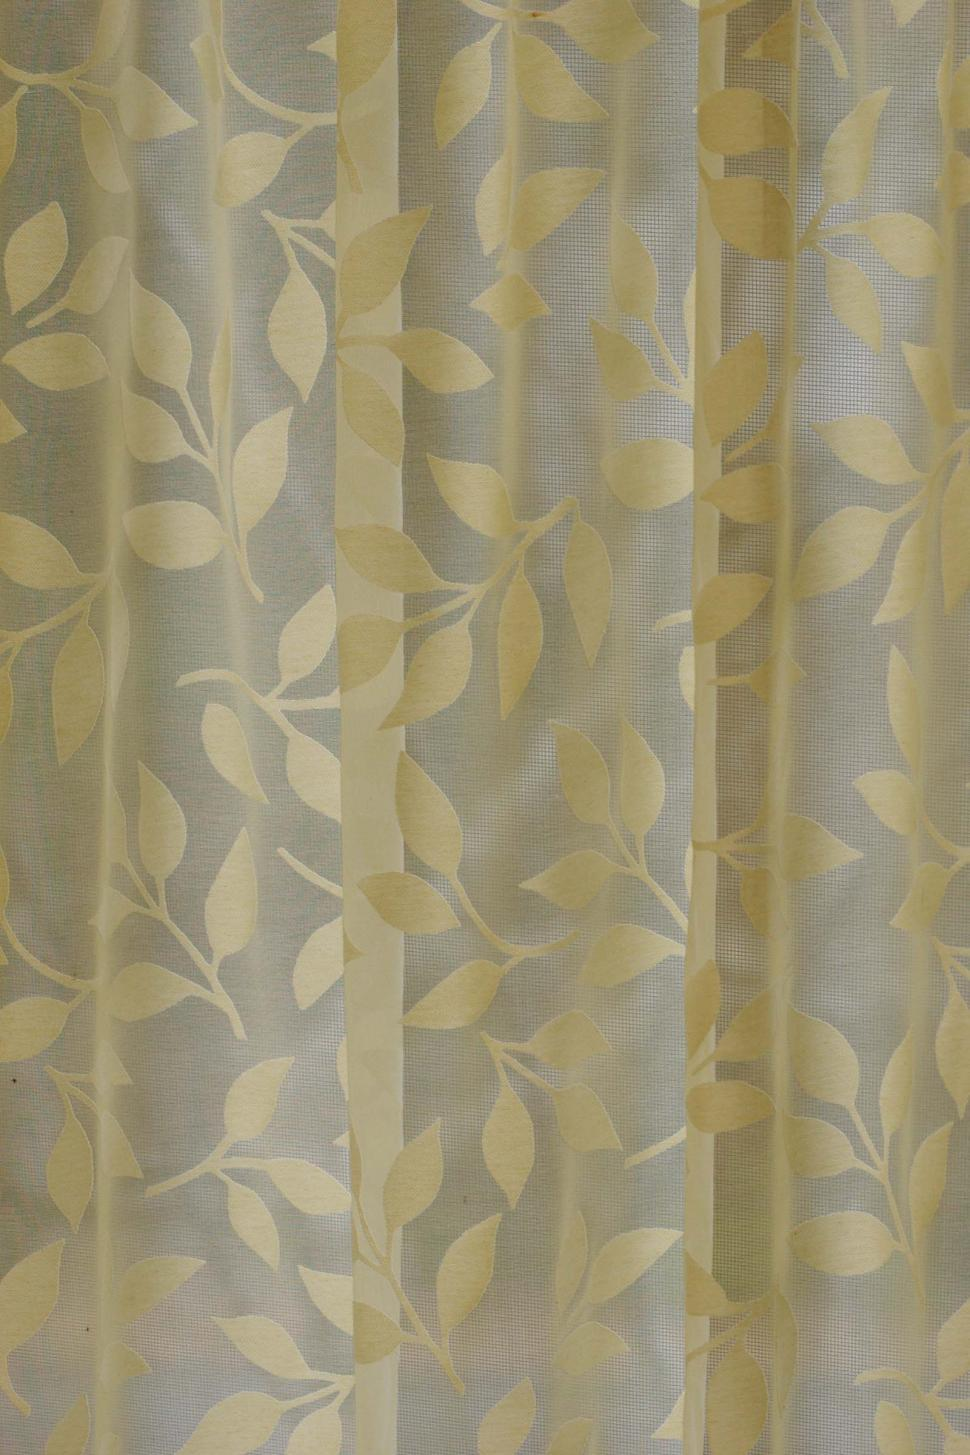 Download Free Stock HD Photo of Fabric with plant design Online